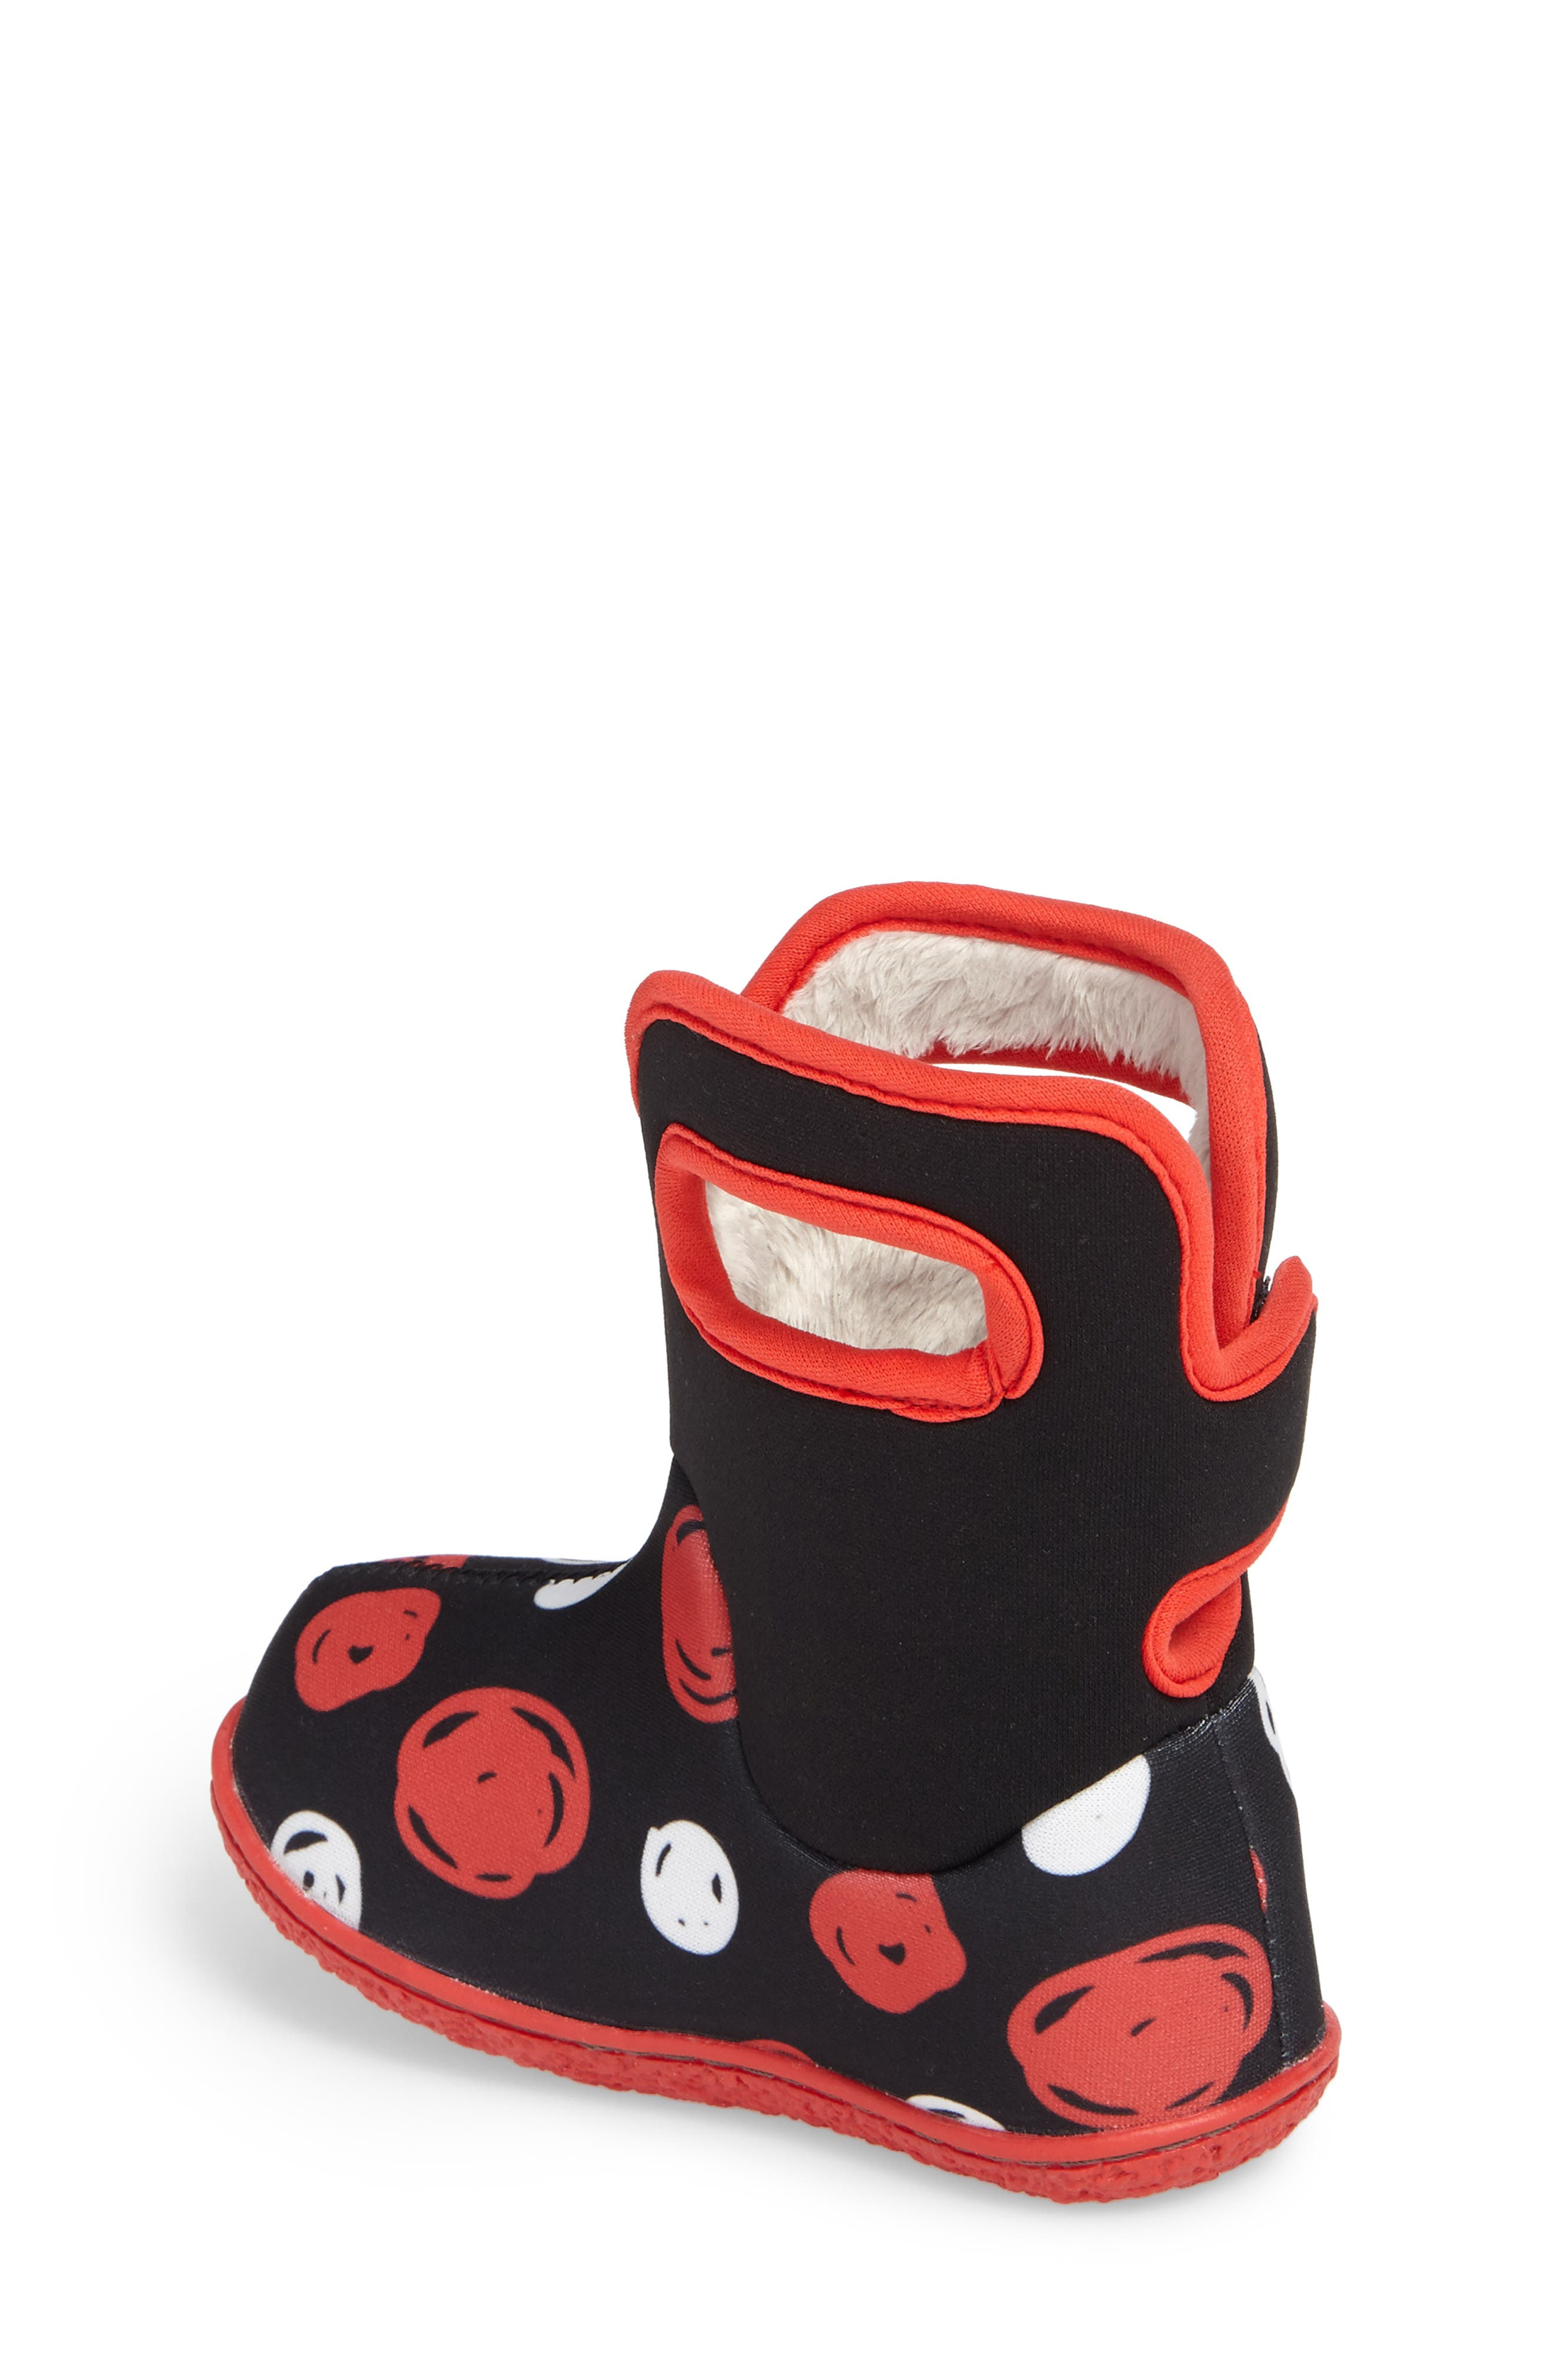 Baby Bogs Classic Sketched Dots Washable Insulated Waterproof Boot,                             Alternate thumbnail 2, color,                             Black/ Red Multi